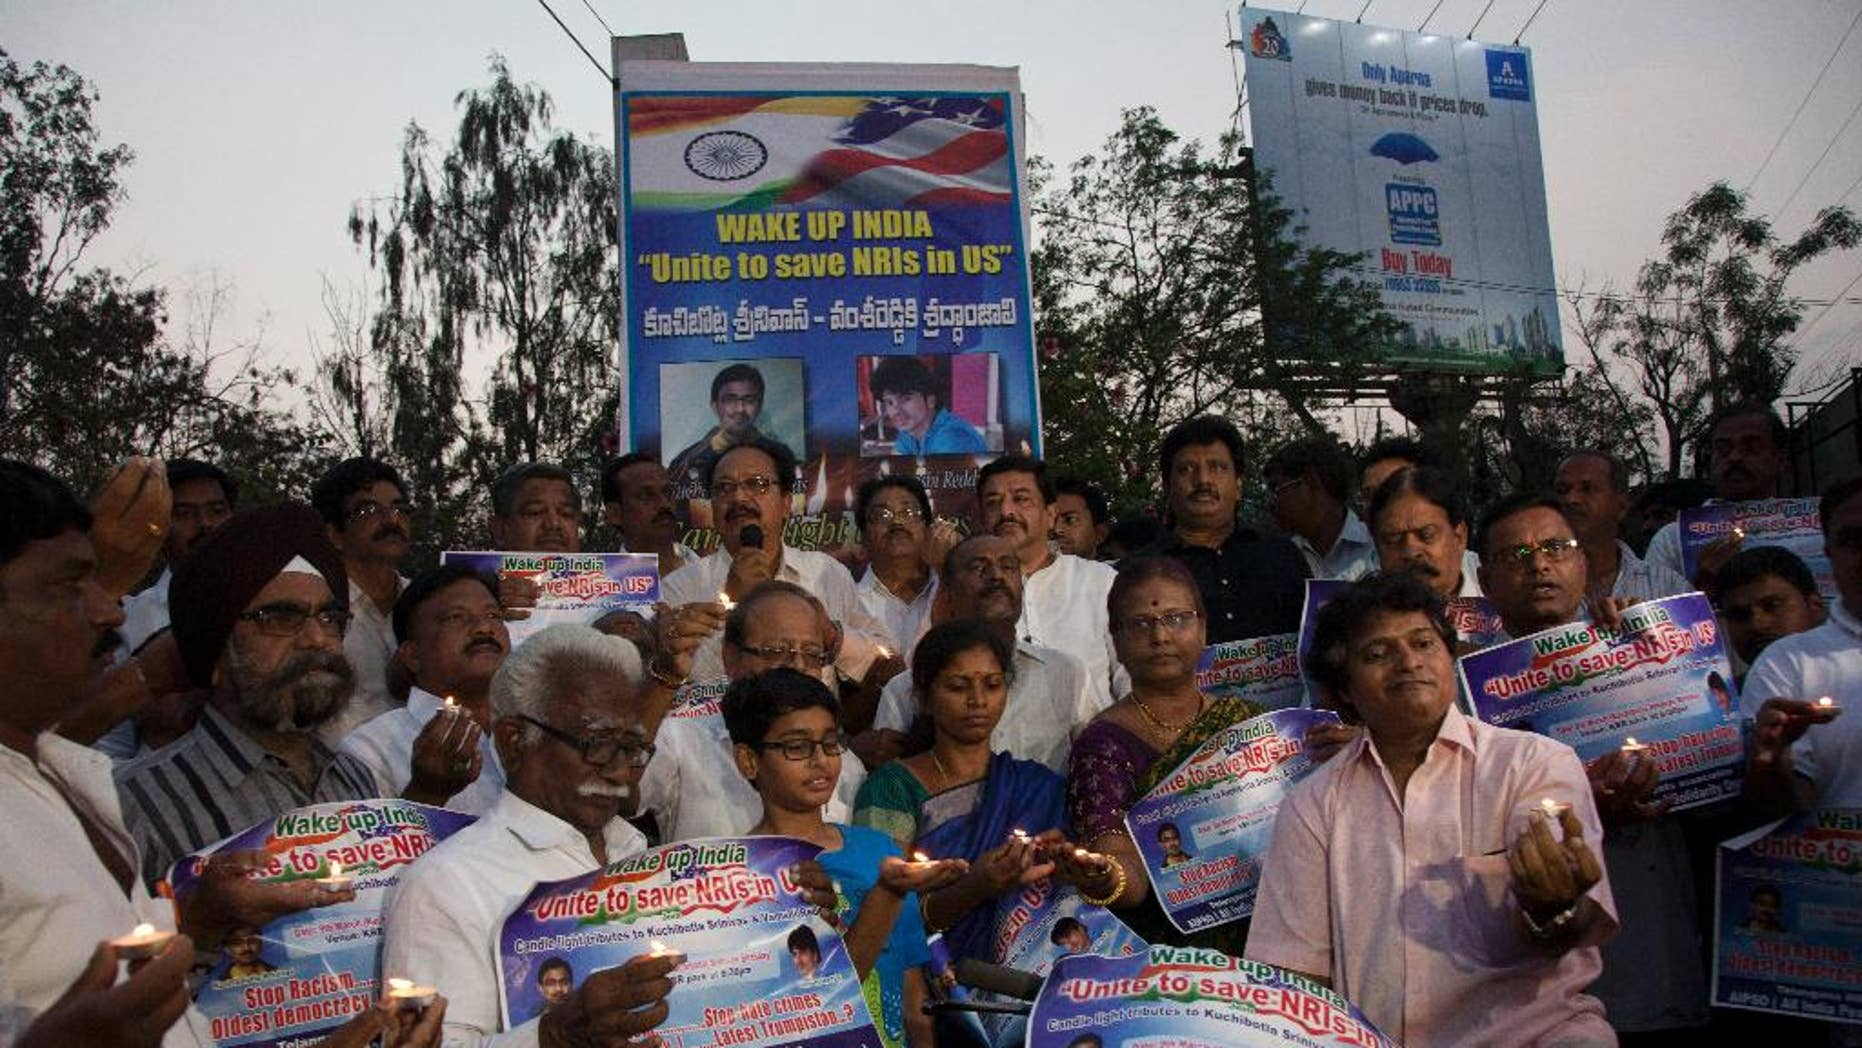 Parents of Indians living abroad are joined by others to participate in a candlelight vigil to pay their tributes to Srinivas Kuchibhotla in Hyderabad, India, Thursday, March 9, 2017. Kuchibhotla, a 32-year-old engineer who was killed in an apparently racially motivated shooting in a crowded Austin's Bar and Grill in Olathe, Kansas, a suburb of Kansas City last month. (AP Photo/Mahesh Kumar A.)